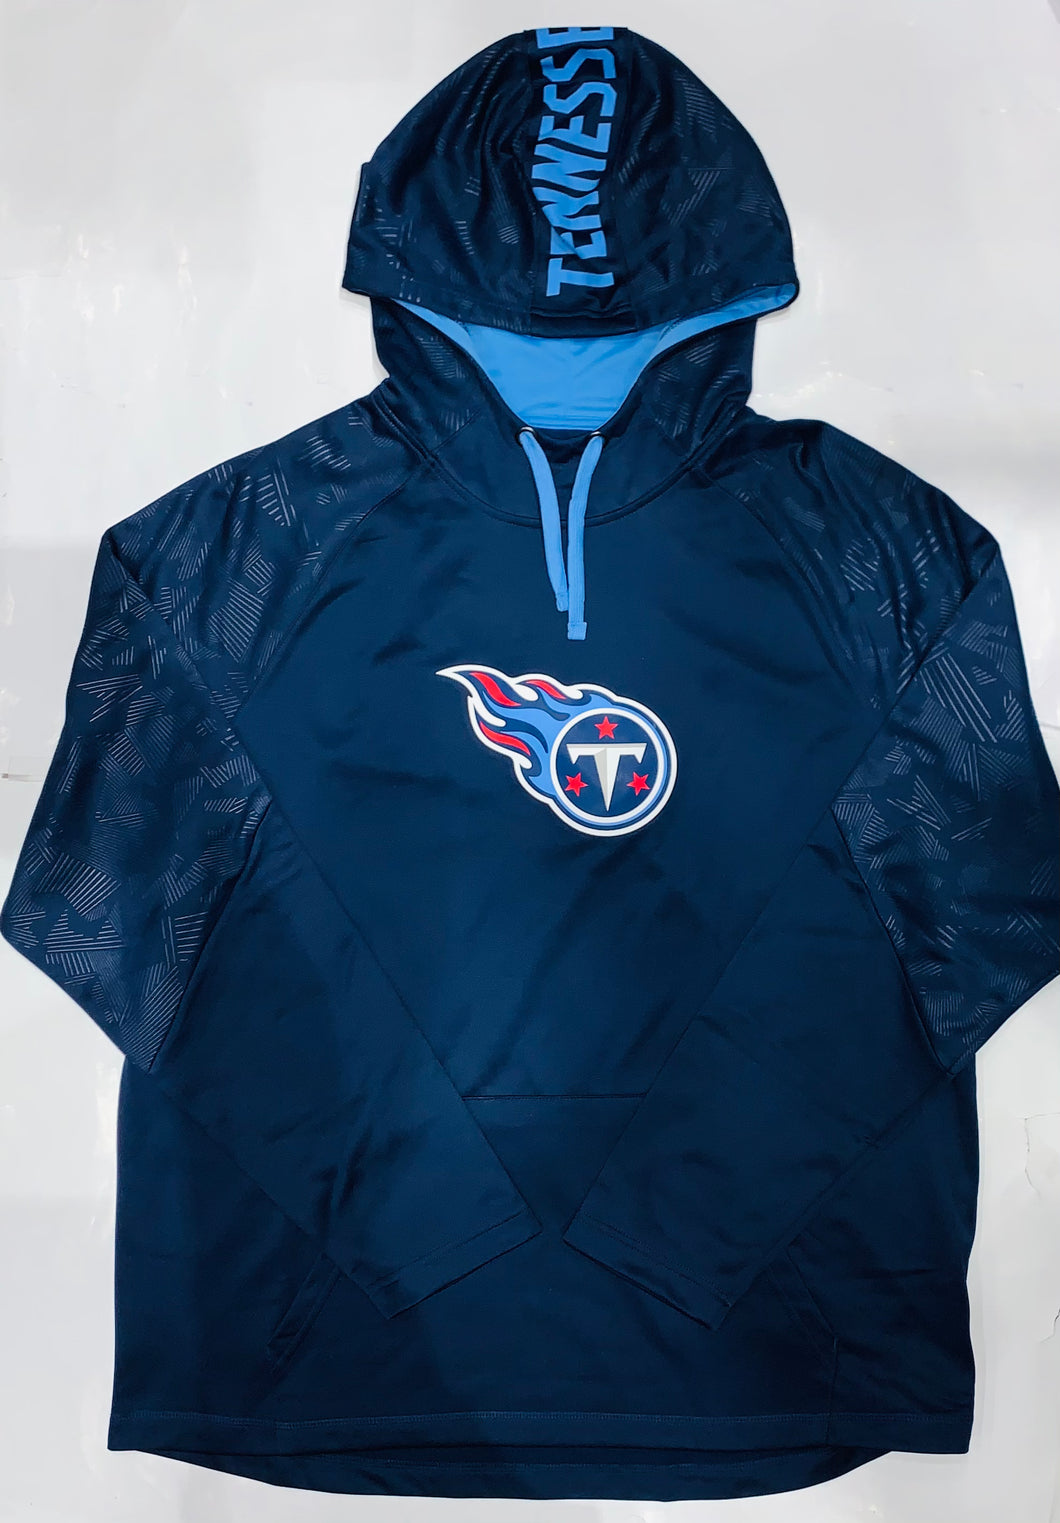 Tennessee Titans Fanatics Navy/Light Blue Pullover Hoodie